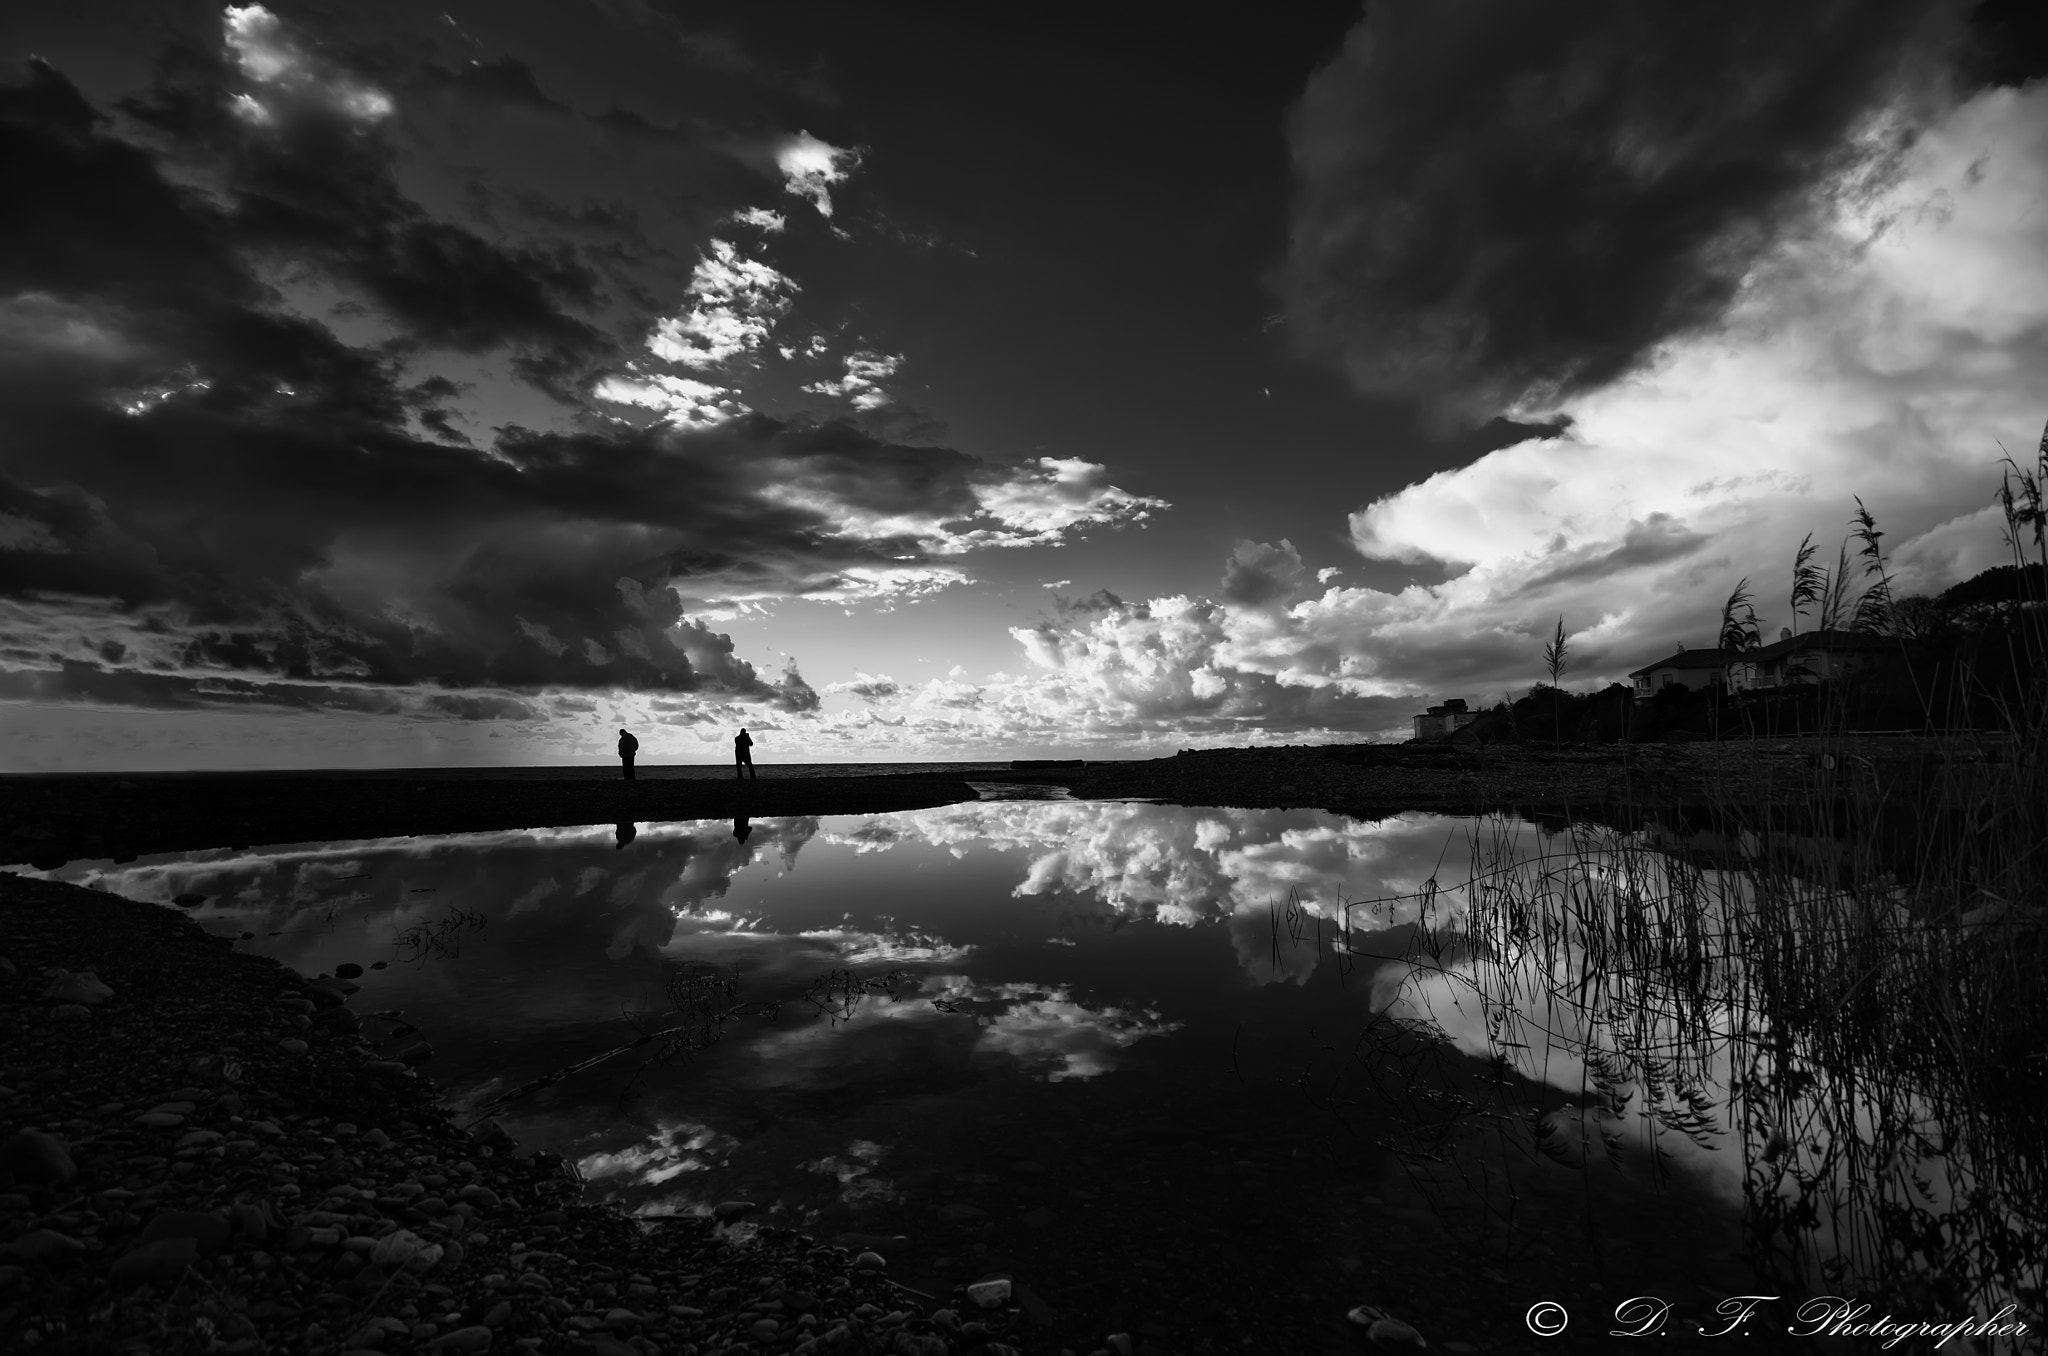 Photograph Reflections by Daniele Forestiere on 500px